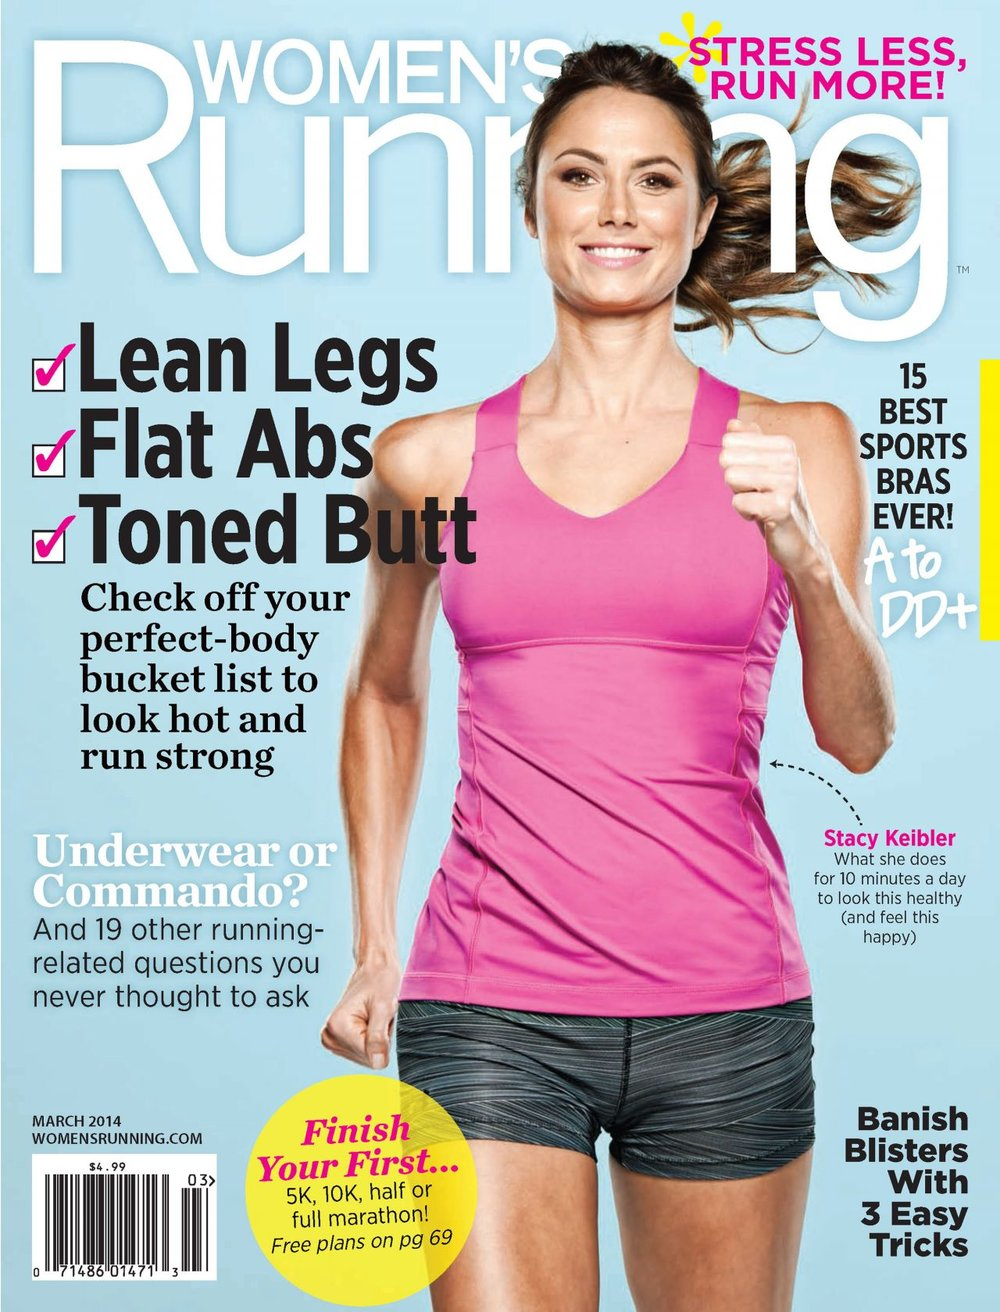 stacy-keibler-women-s-running-magazine-march-2014-cover_1.jpg